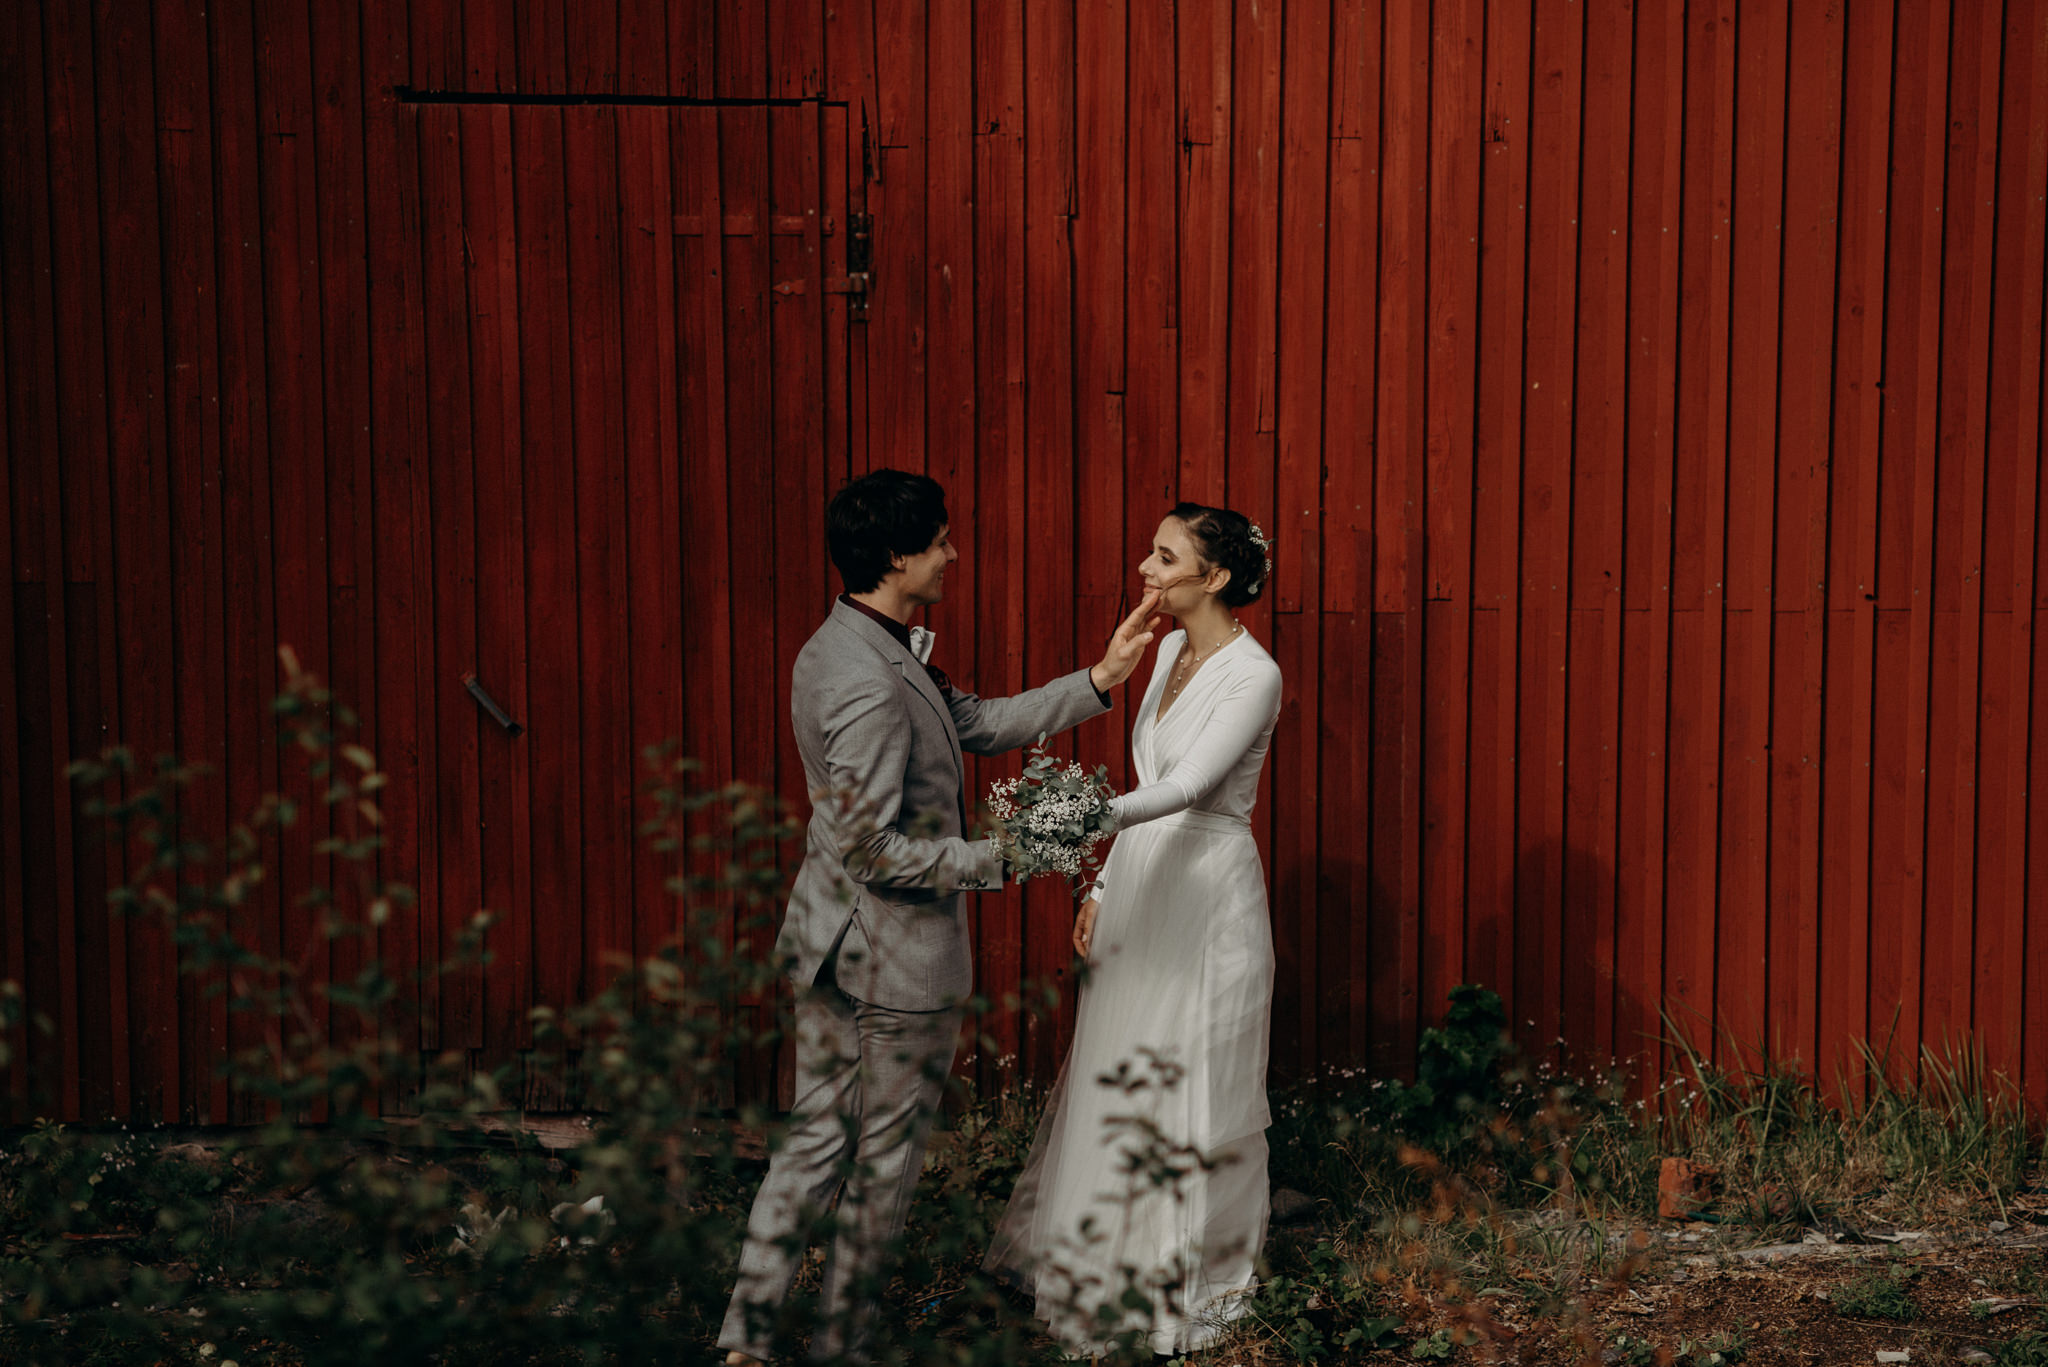 Groom removing hair from brides face in front of red barn wall